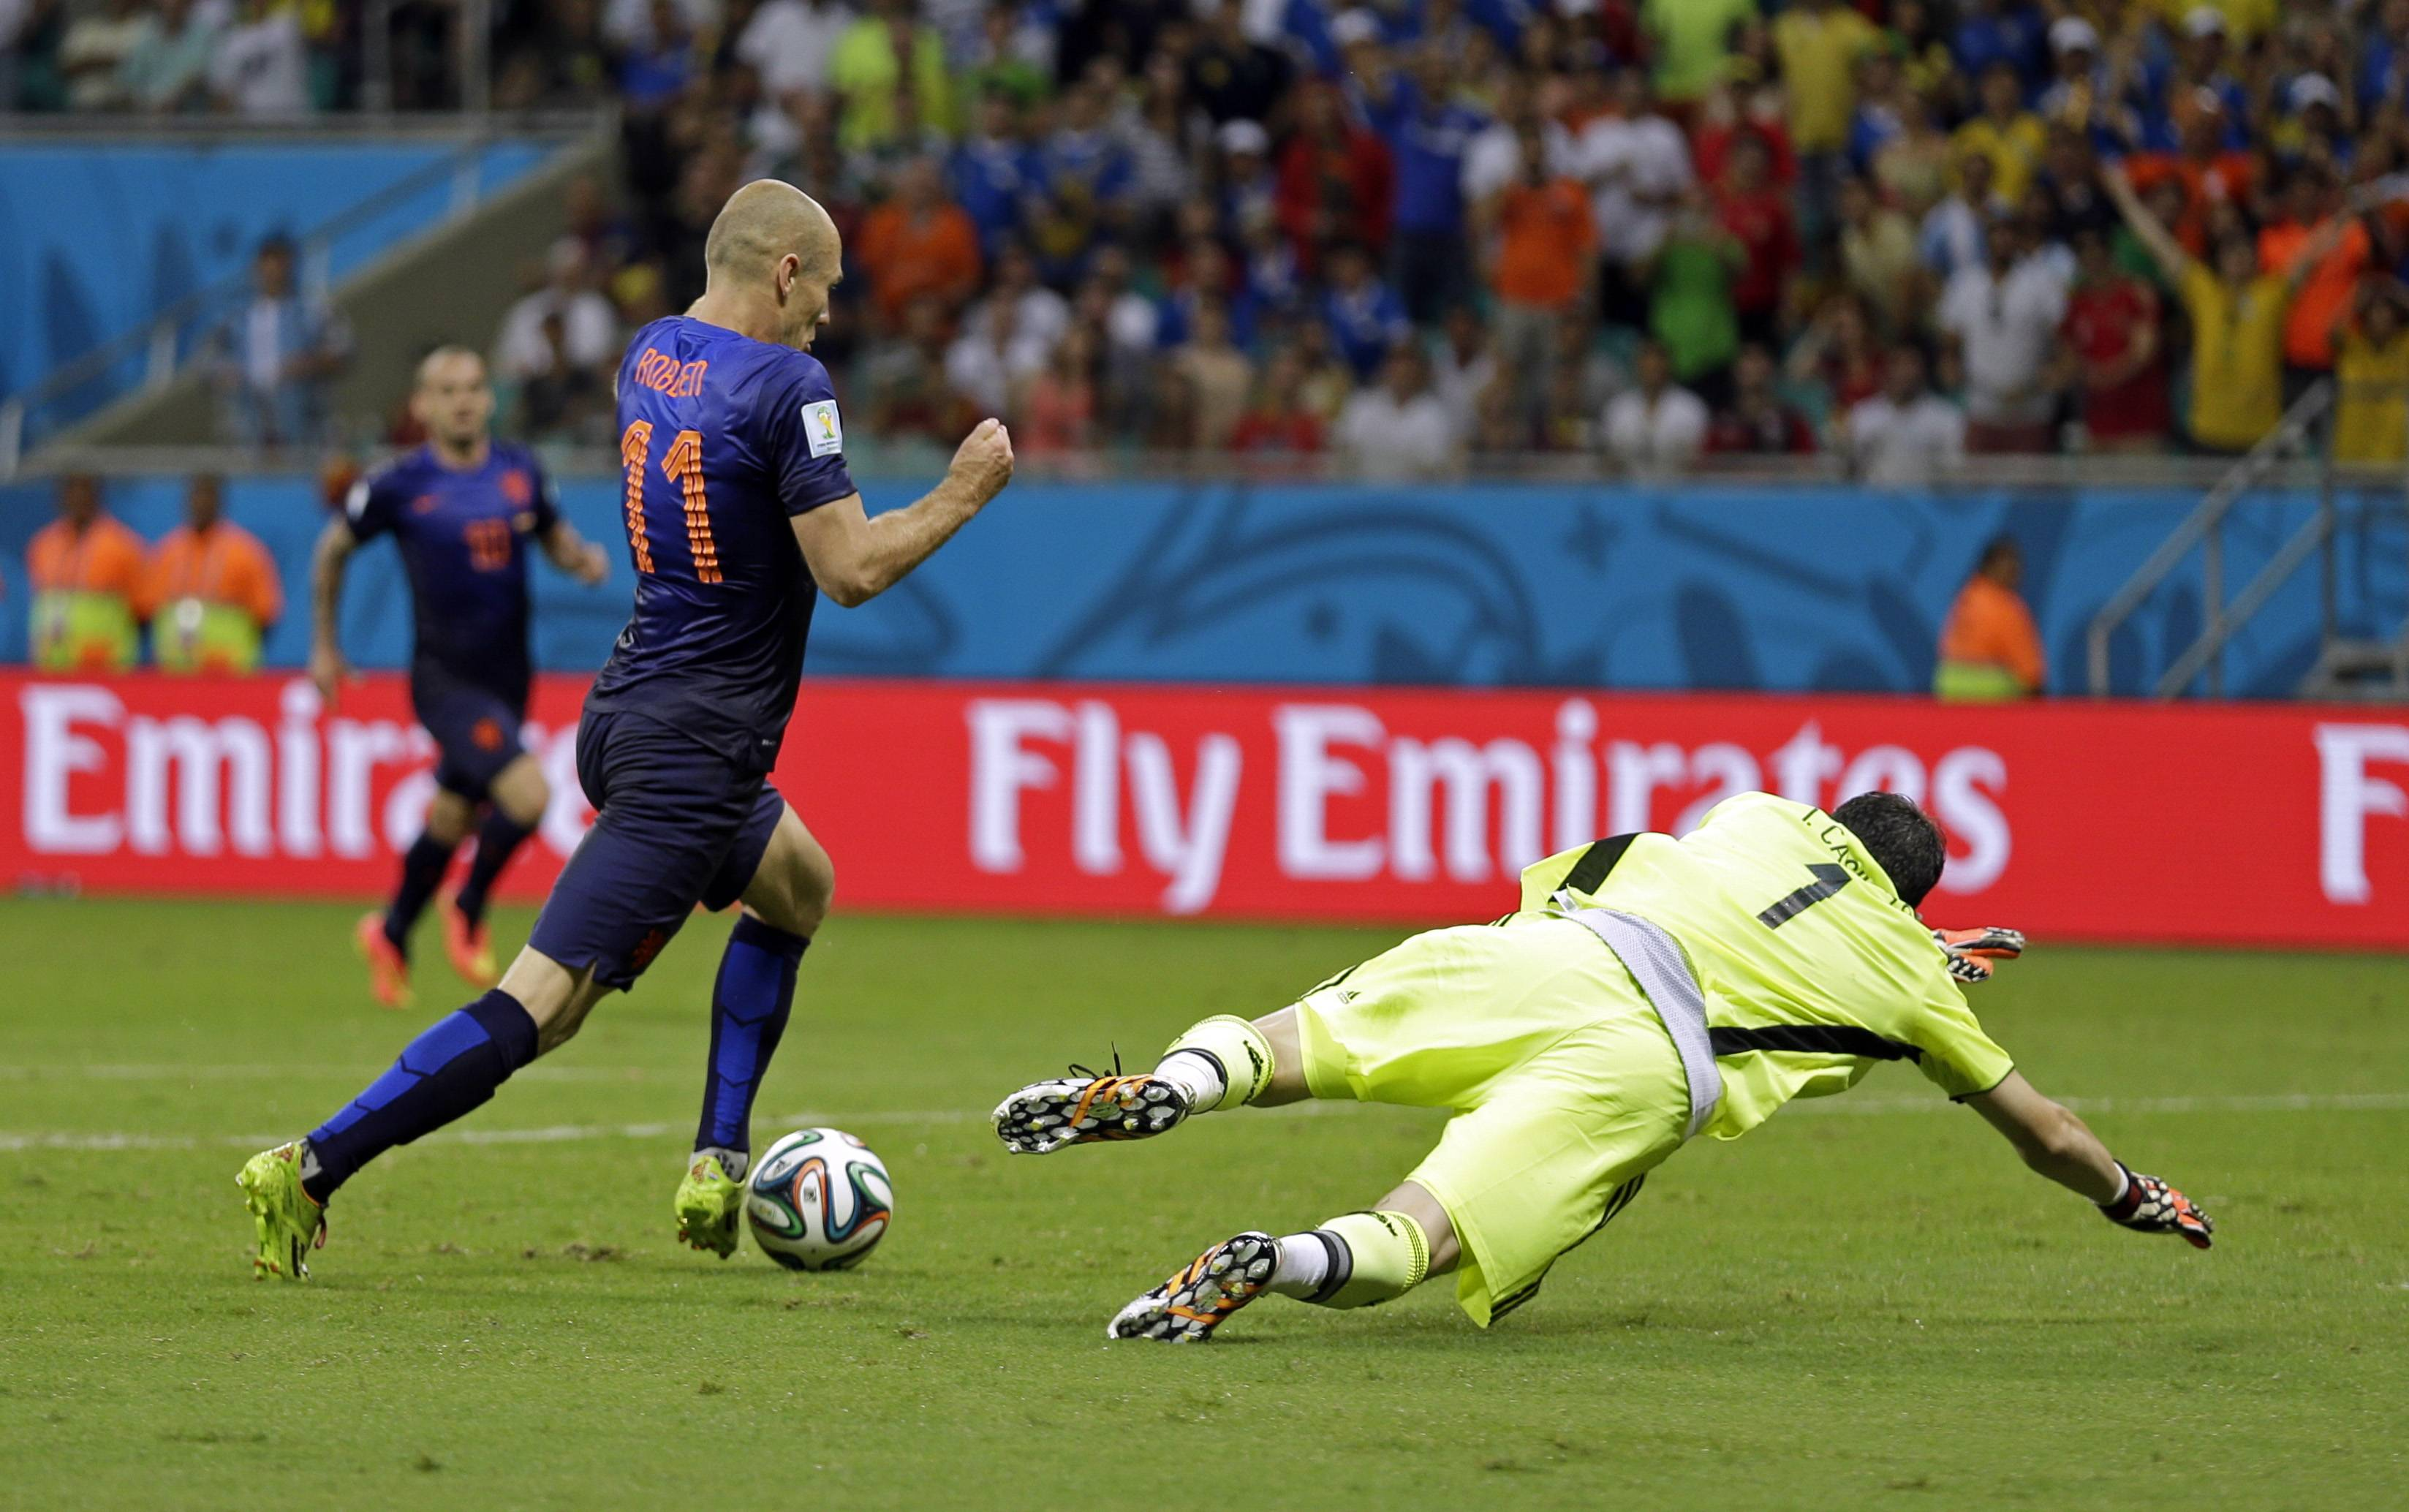 Netherlands' Arjen Robben goes around Spain's goalkeeper Iker Casillas to score his side's fifth goal during the second half of the group B World Cup soccer match between Spain and the Netherlands at the Arena Ponte Nova in Salvador, Brazil, Friday, June 13, 2014.